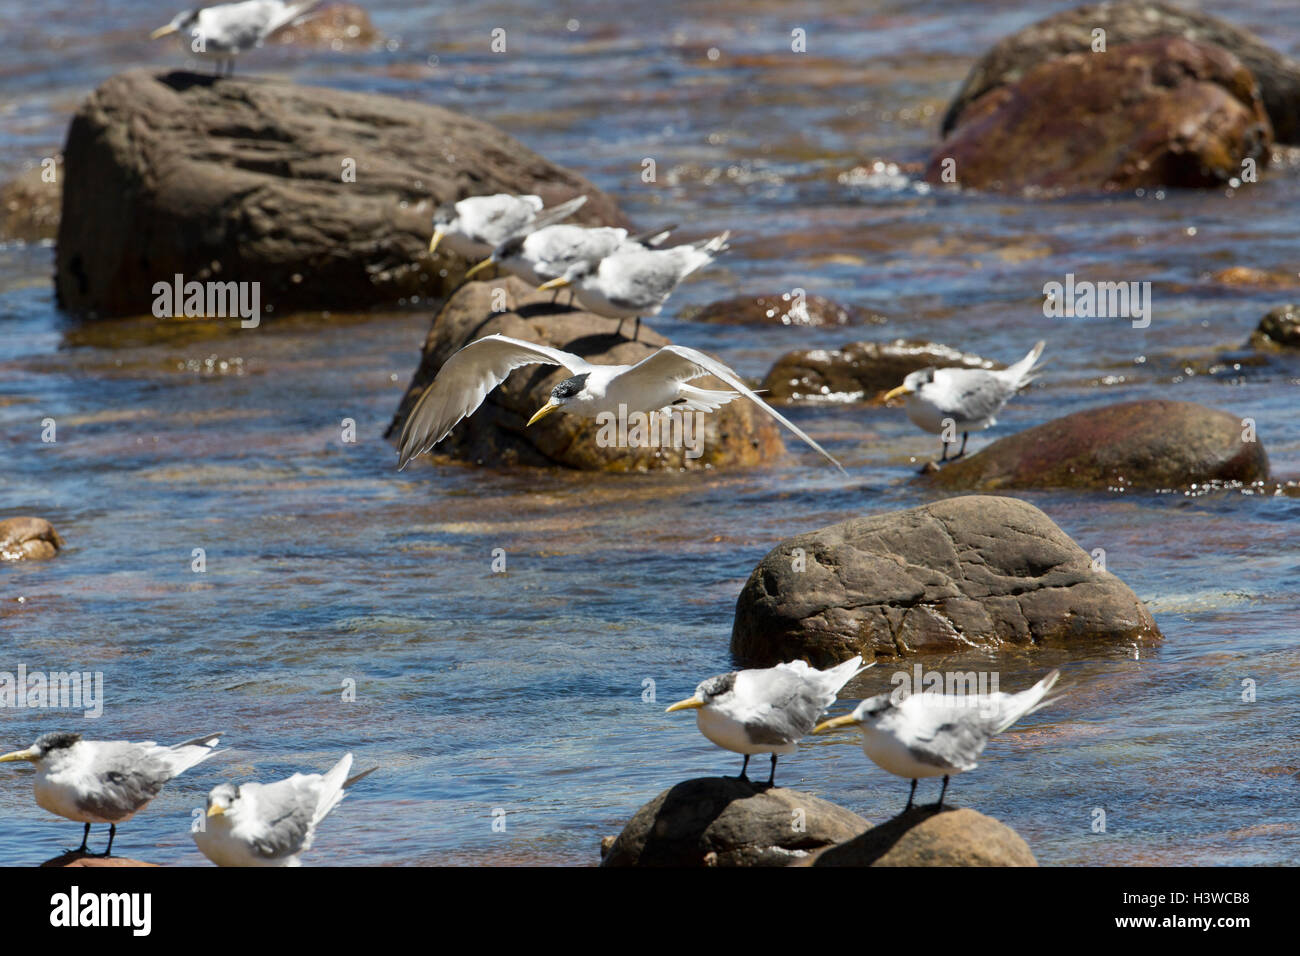 Swift Terns, Sterna bergii, on rocks at Cape Town, South Africa - Stock Image